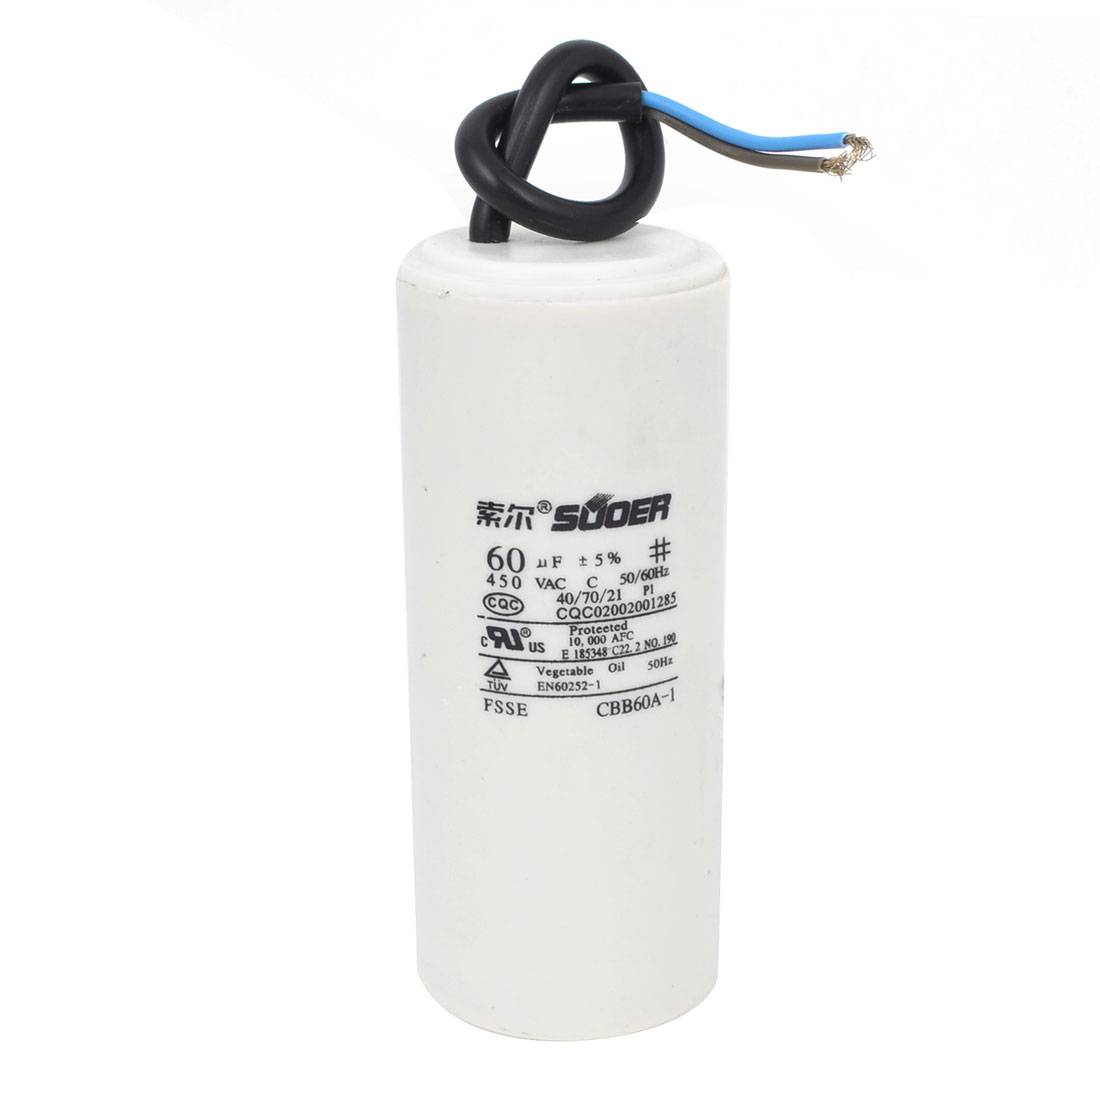 Washing Machine Washer Polypropylene Film Wire Motor Running Capacitor AC 450V 60uF CBB60